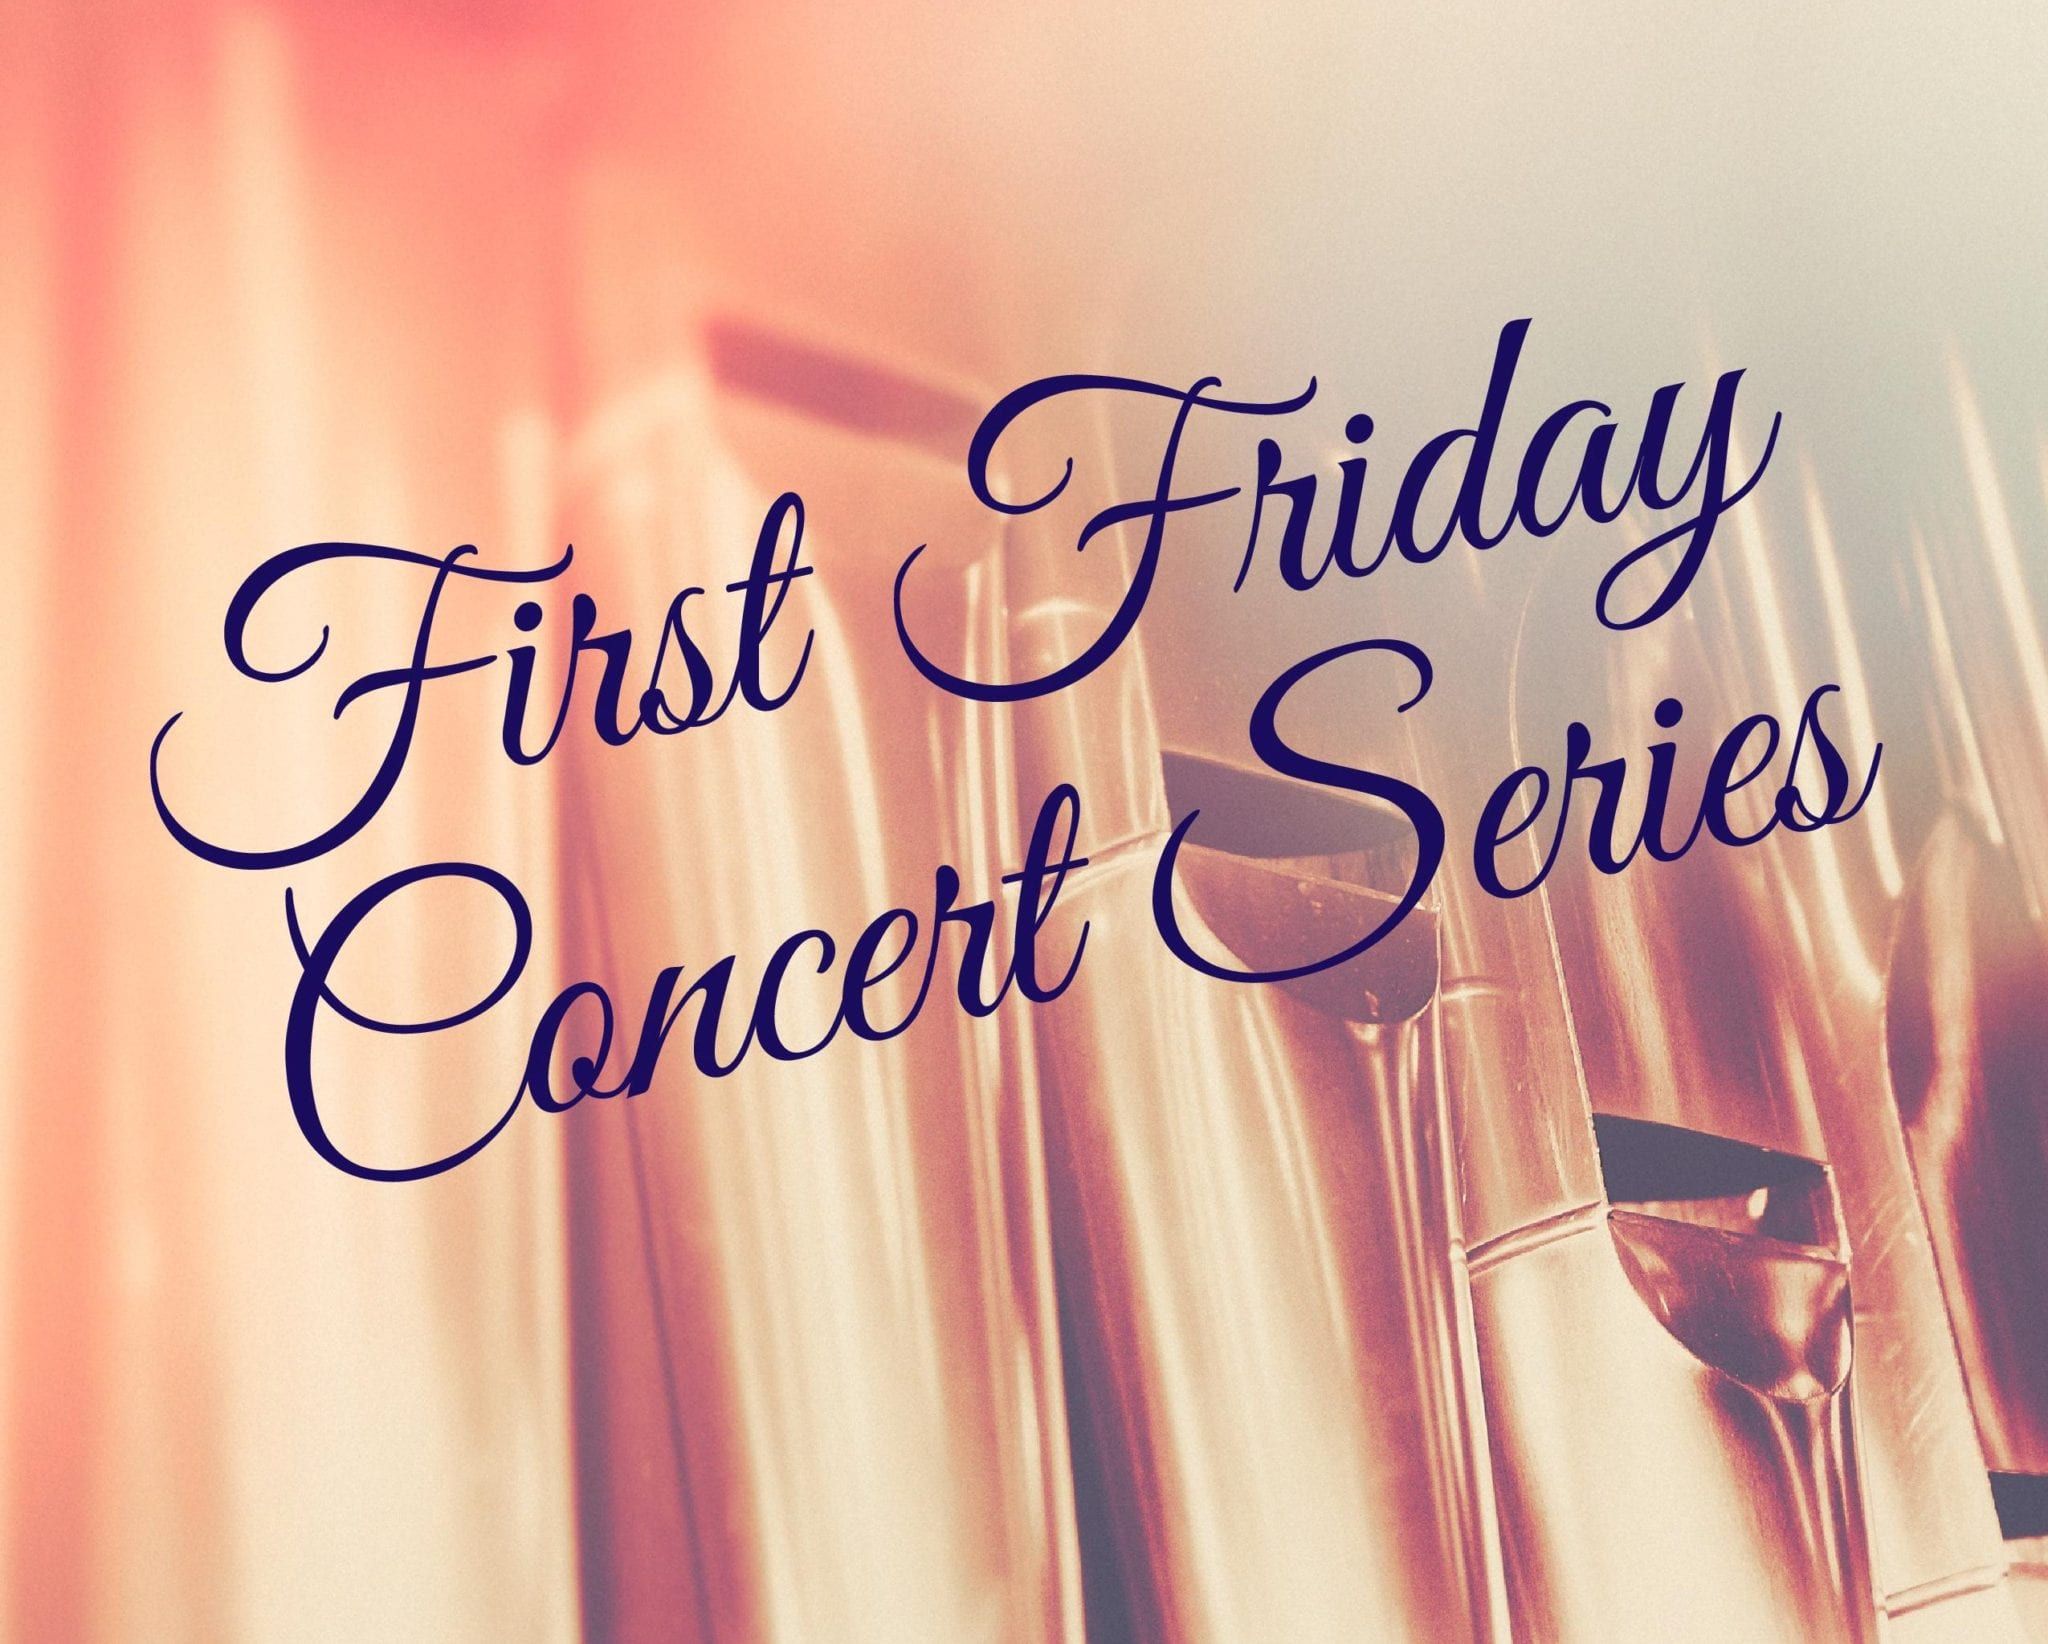 First Friday Concert Series – Christine Brewer